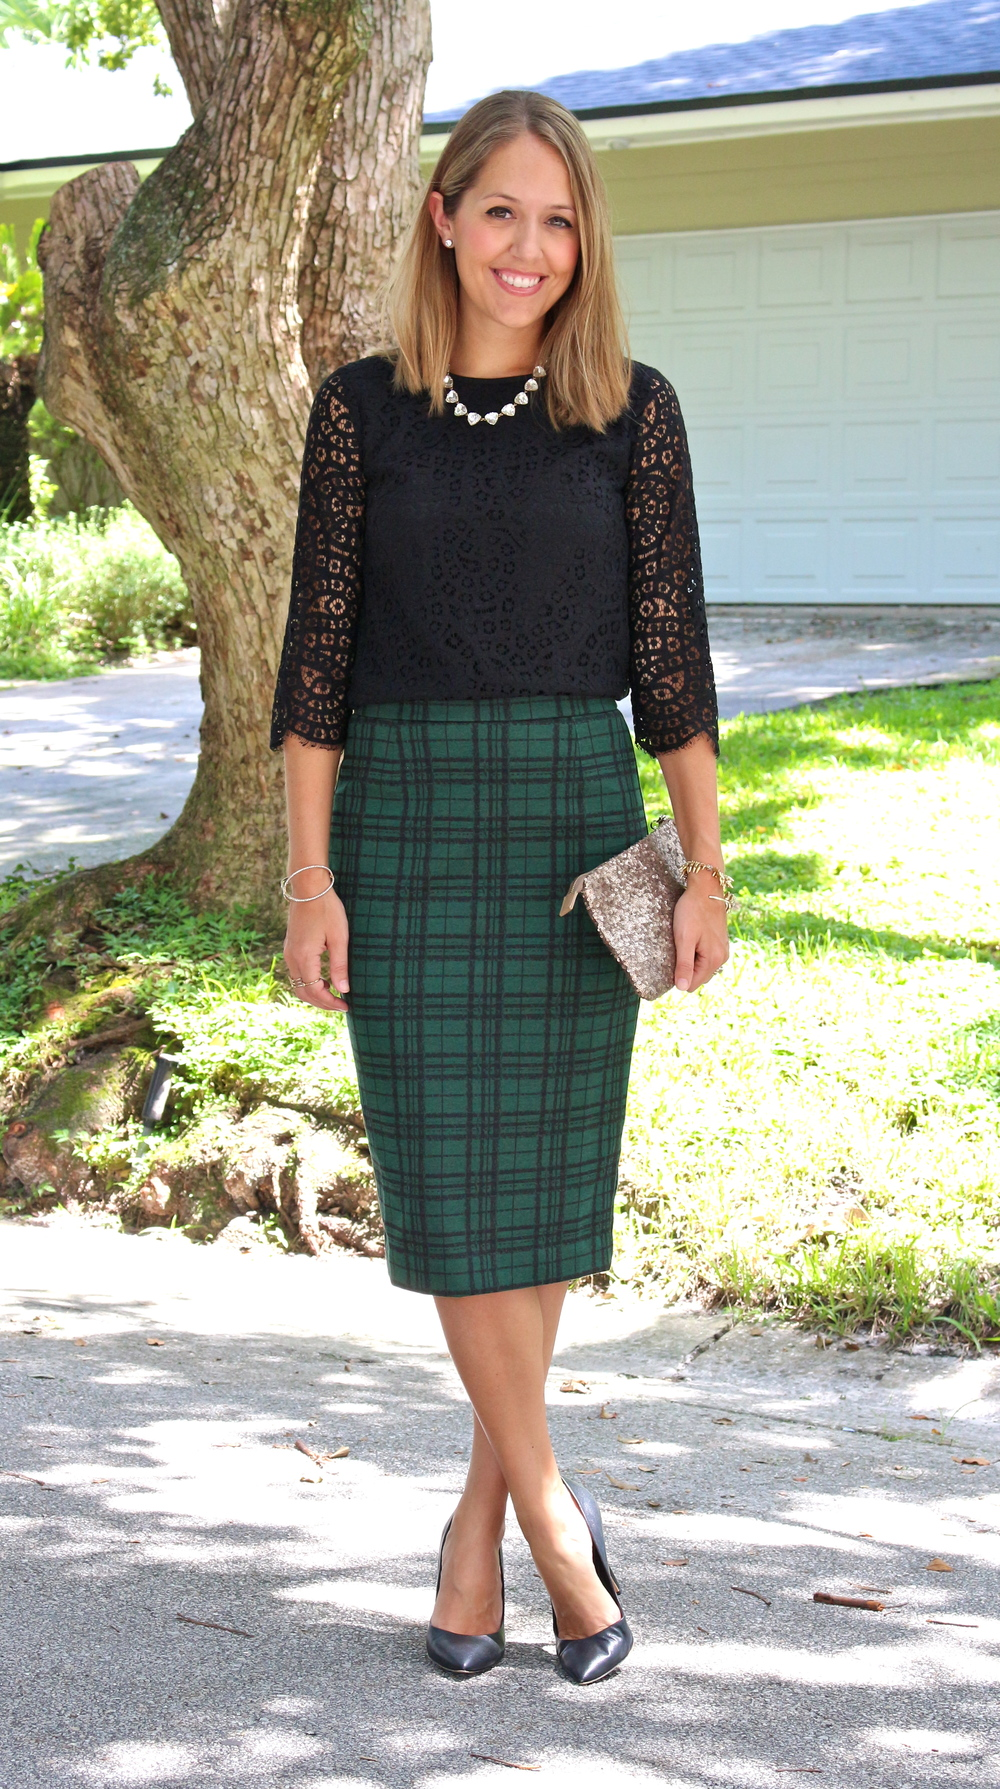 Black lace top, green plaid skirt